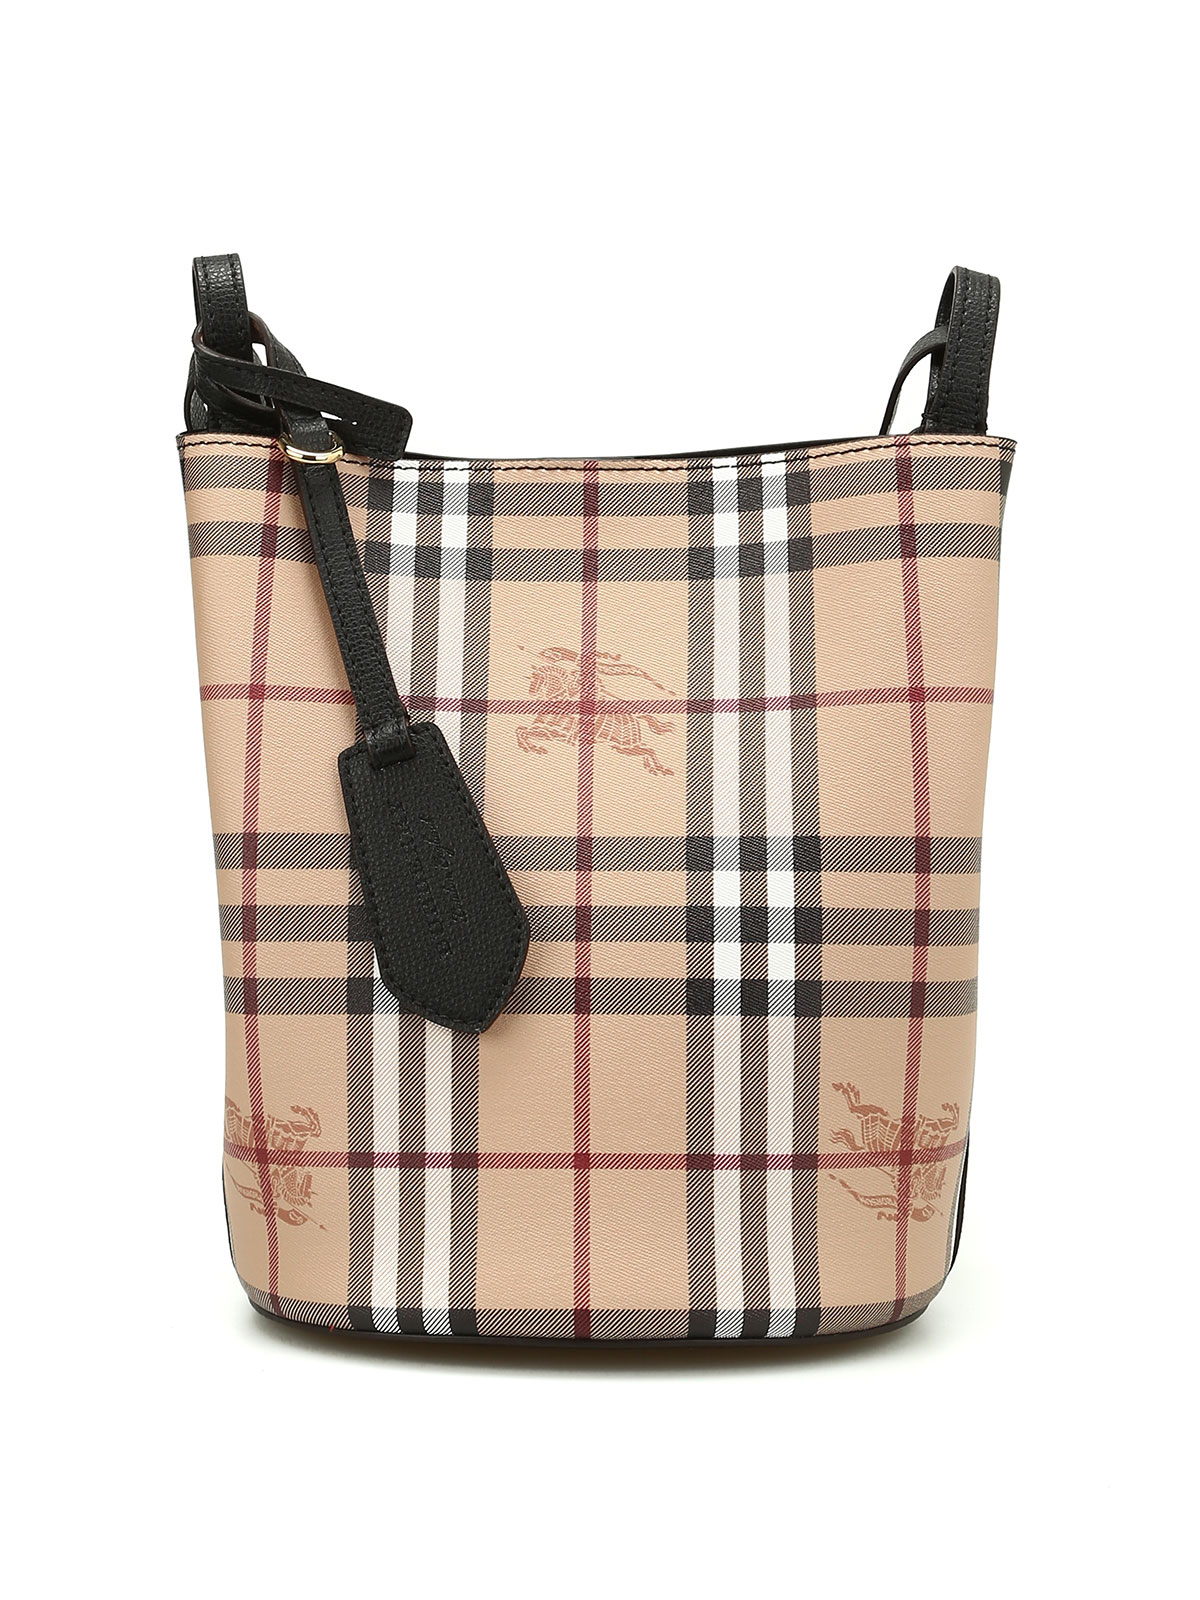 d10a437ea237 Burberry - Lorne small satchel bag - Bucket bags - 4057158